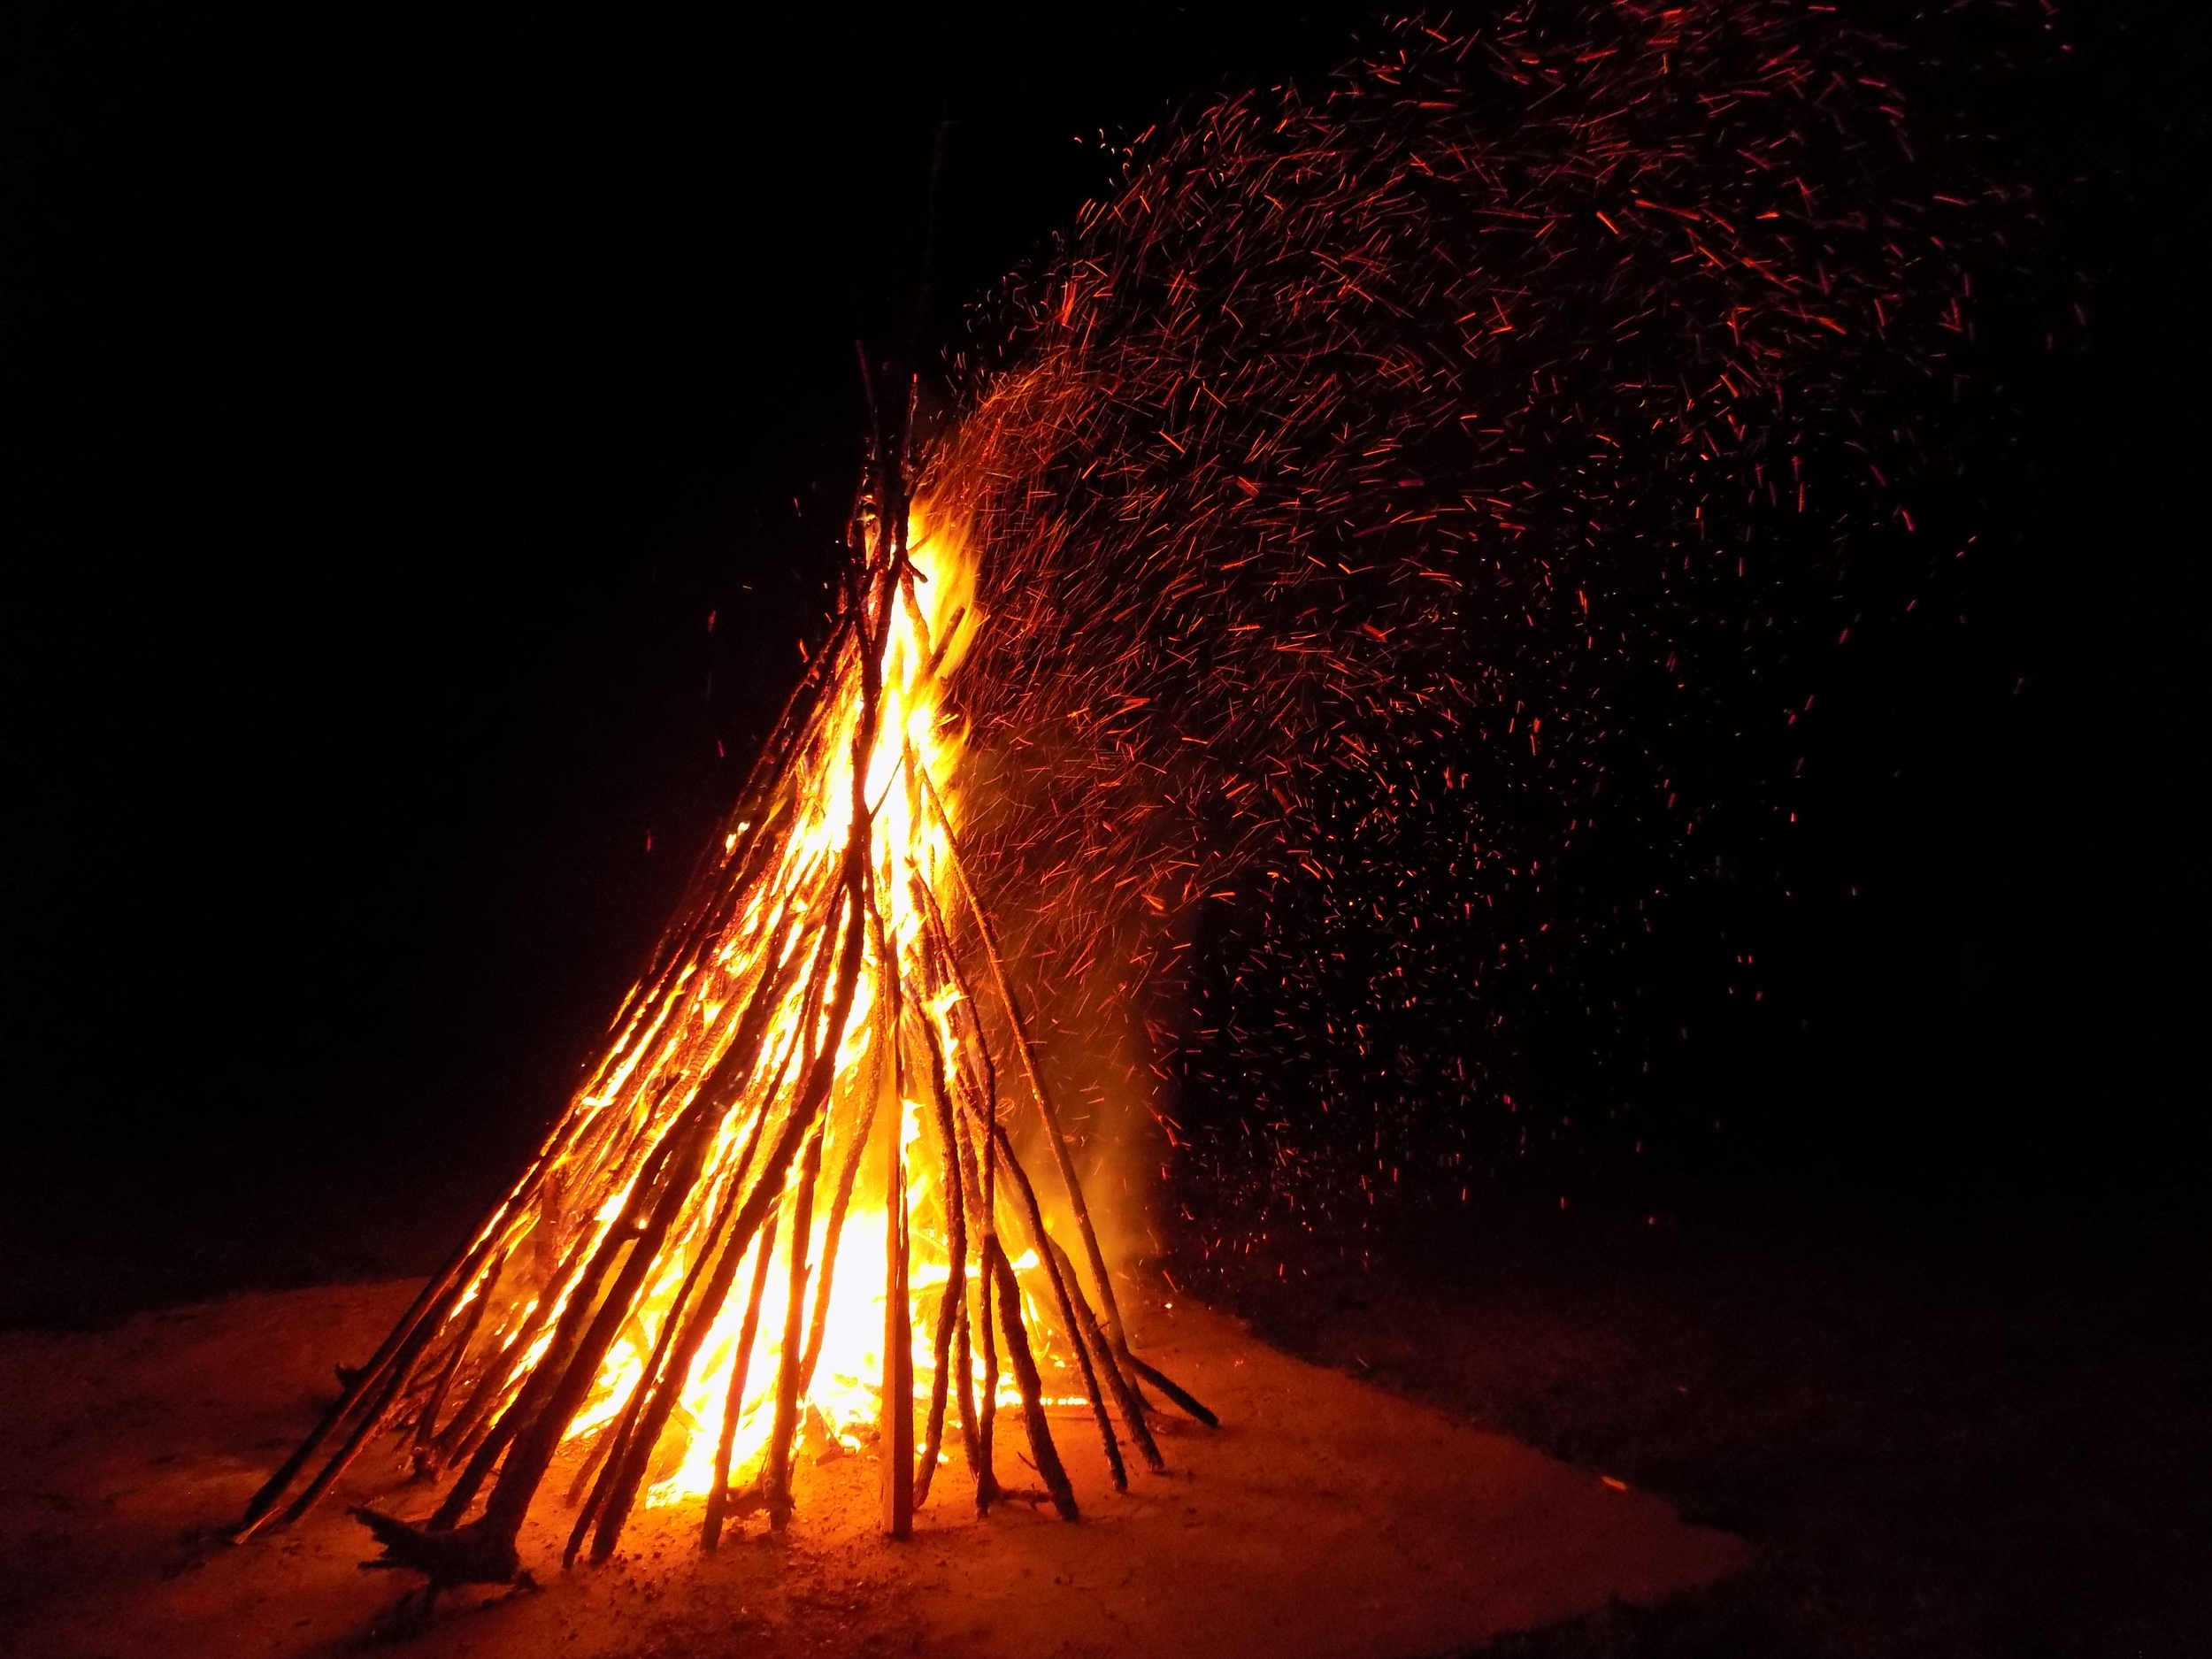 Late-night campfire, part 1